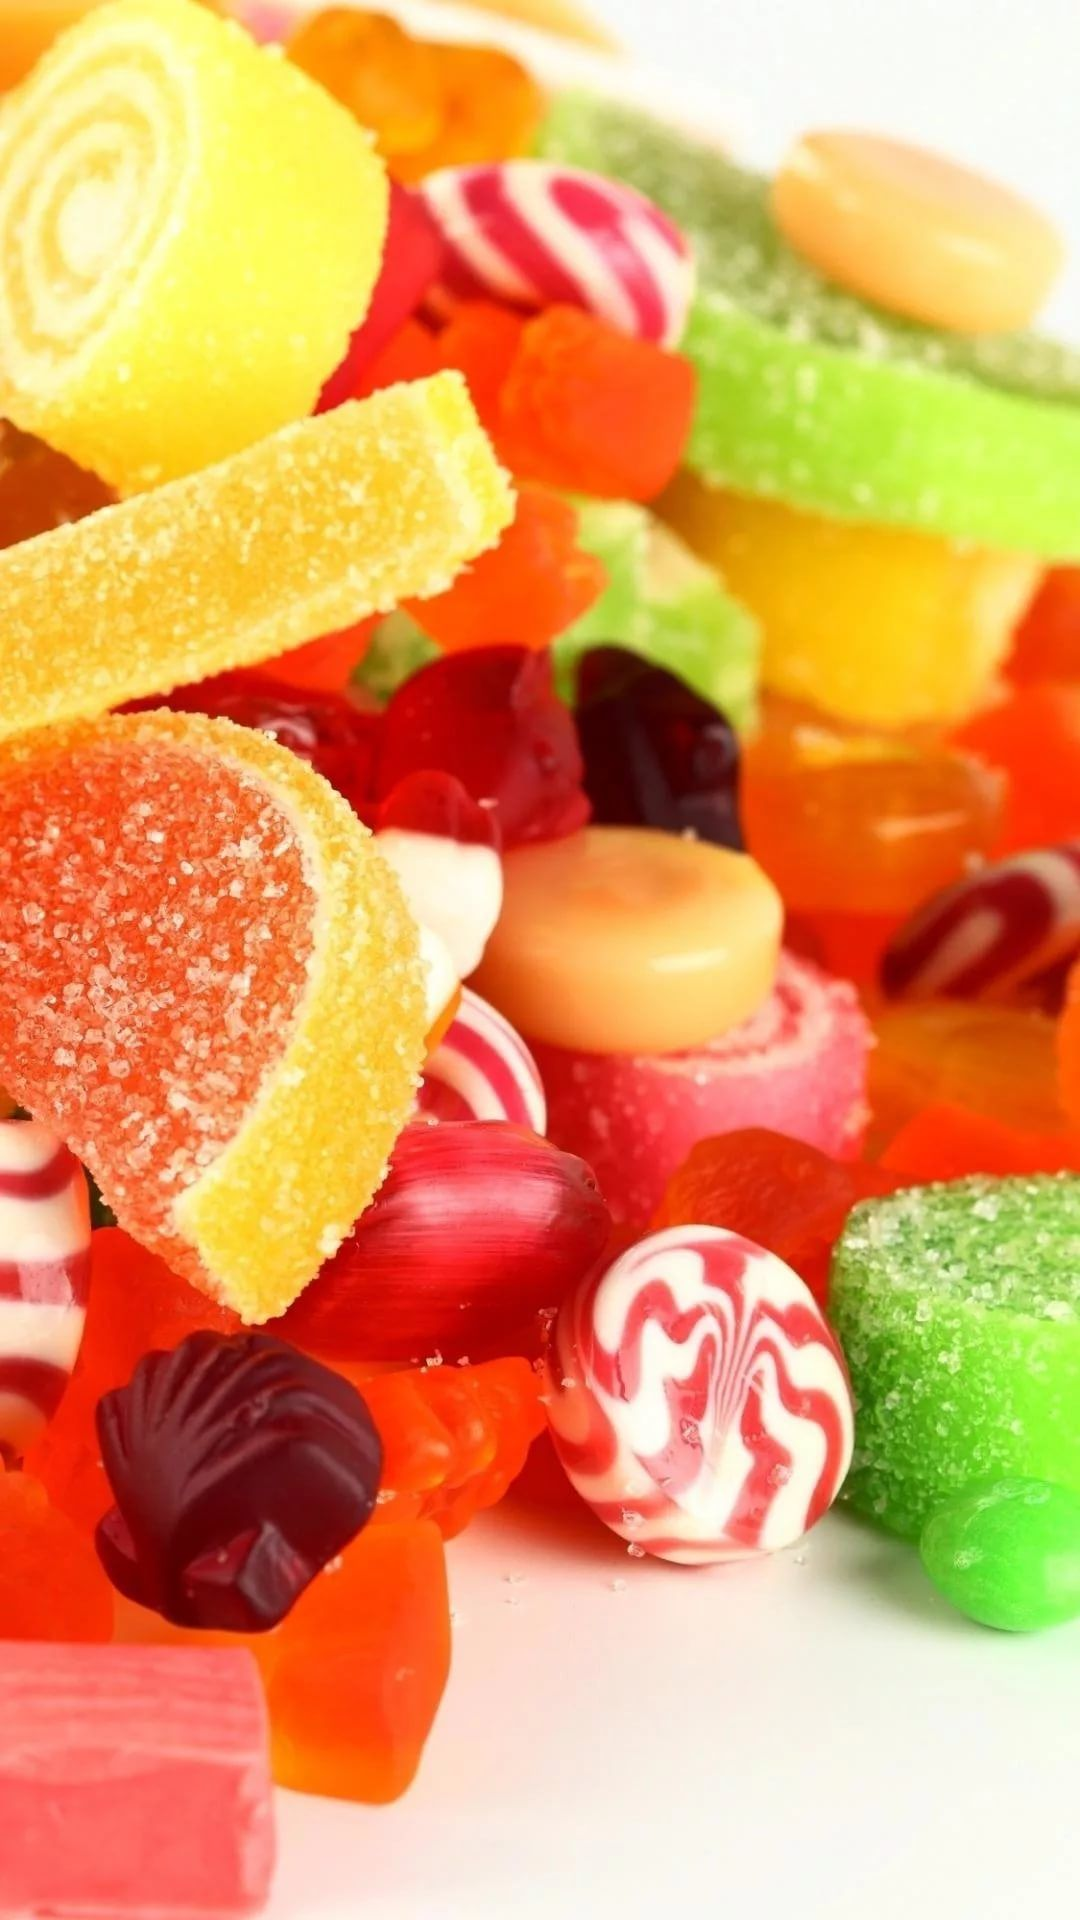 Candy wallpaper for android